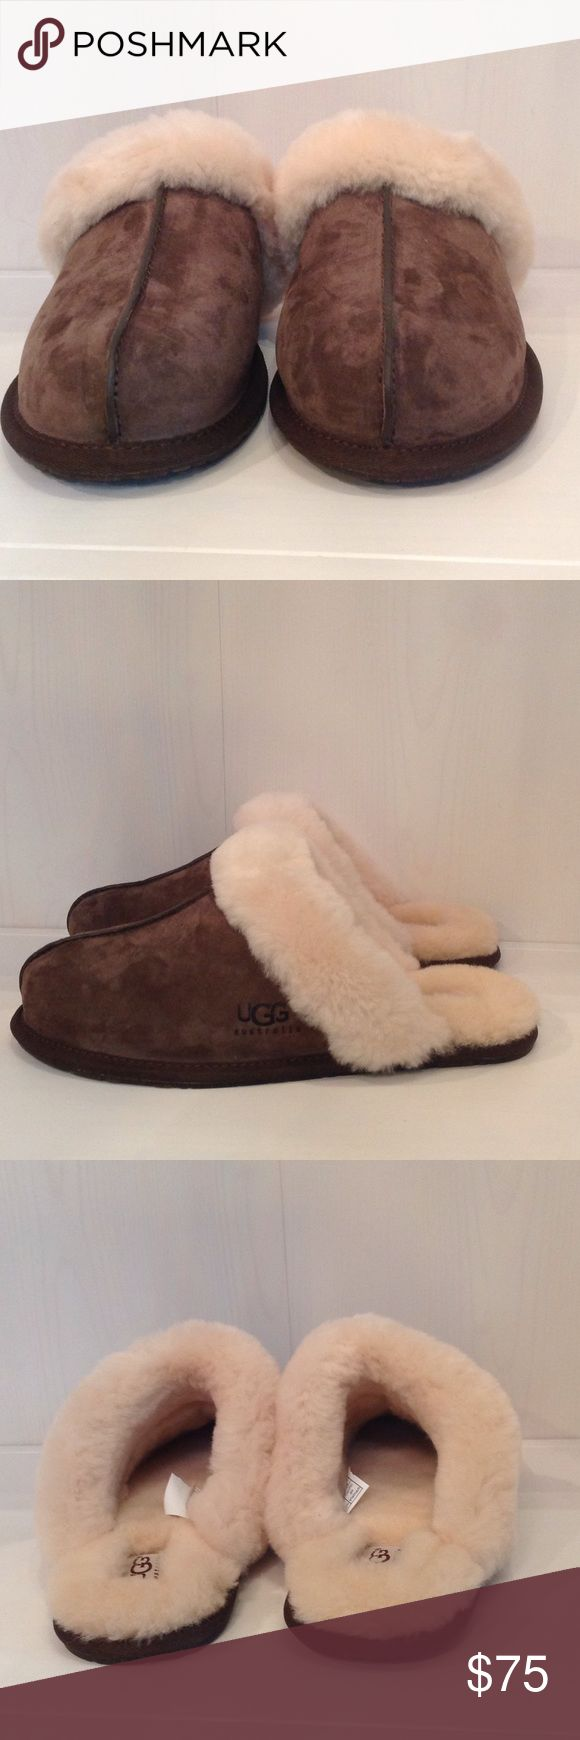 Ugg Women's Scufffette II Espresso 5661 The Scuffette II sets the standard for feel with soft suede, a plush sheepskin collar, and a natural wool interior. A cork-infused rubber sole pads this slipper with function and readies it for light outdoor wear.  100% Authentic UGG Scuffette II Slipper, Espresso color, box is damaged, Women's shoe, US Size 9  Sheepskin and water-resistant Silkee suede  Sheepskin lining  UGGpure™ wool insole  Rubber outsole with cork  Nylon binding UGG Shoes Slippers